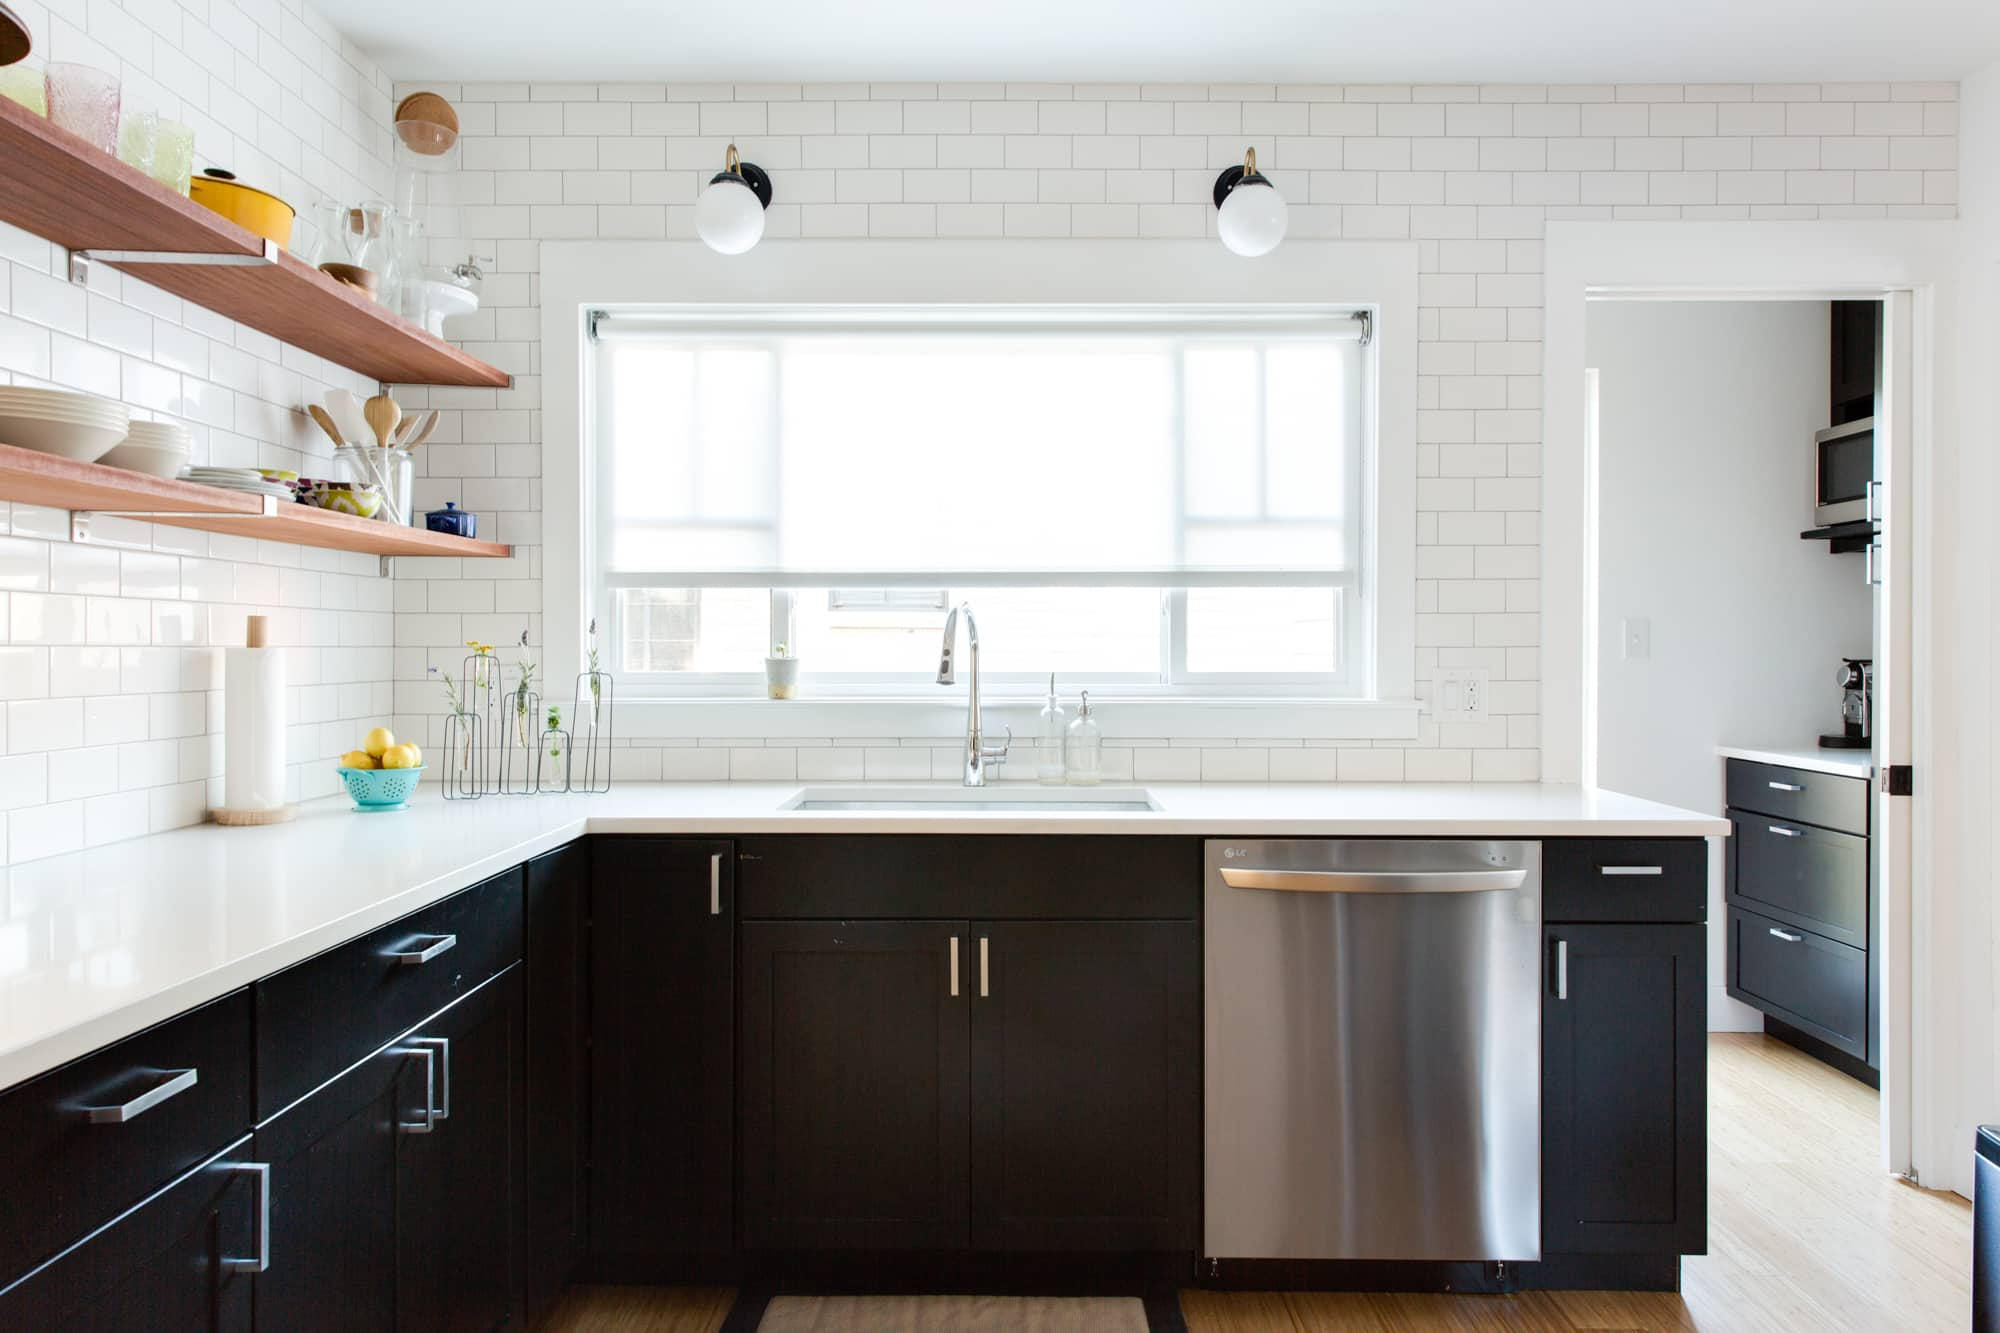 Bad Interior Design Images The 9 Deadly Sins of Bad Kitchens, According to the Pros